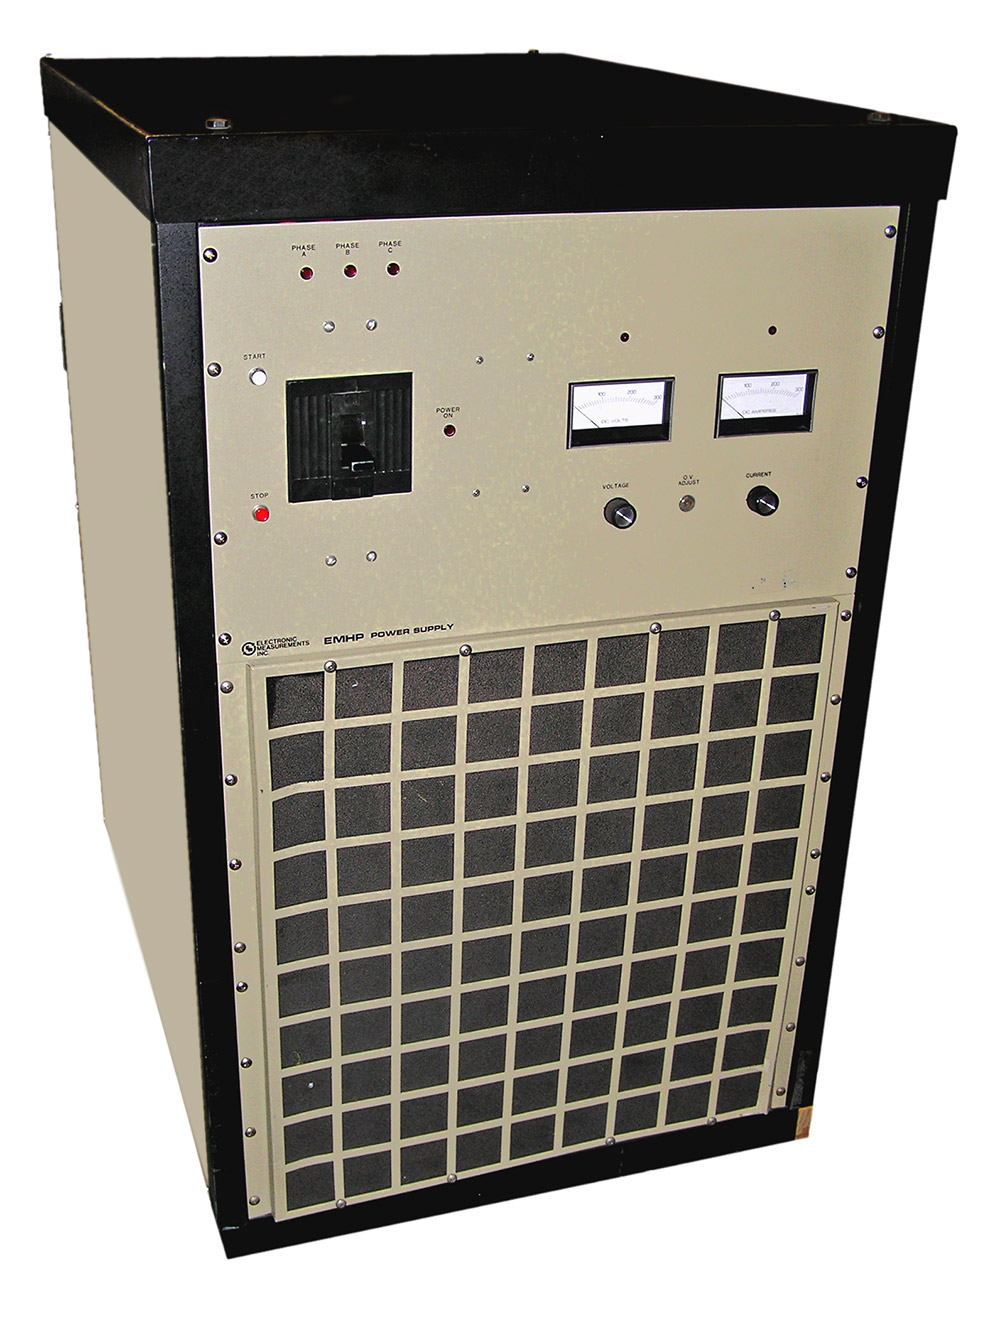 Rent EMI / TDK-Lambda EMHP 300-300 90 KW DC Power Supply